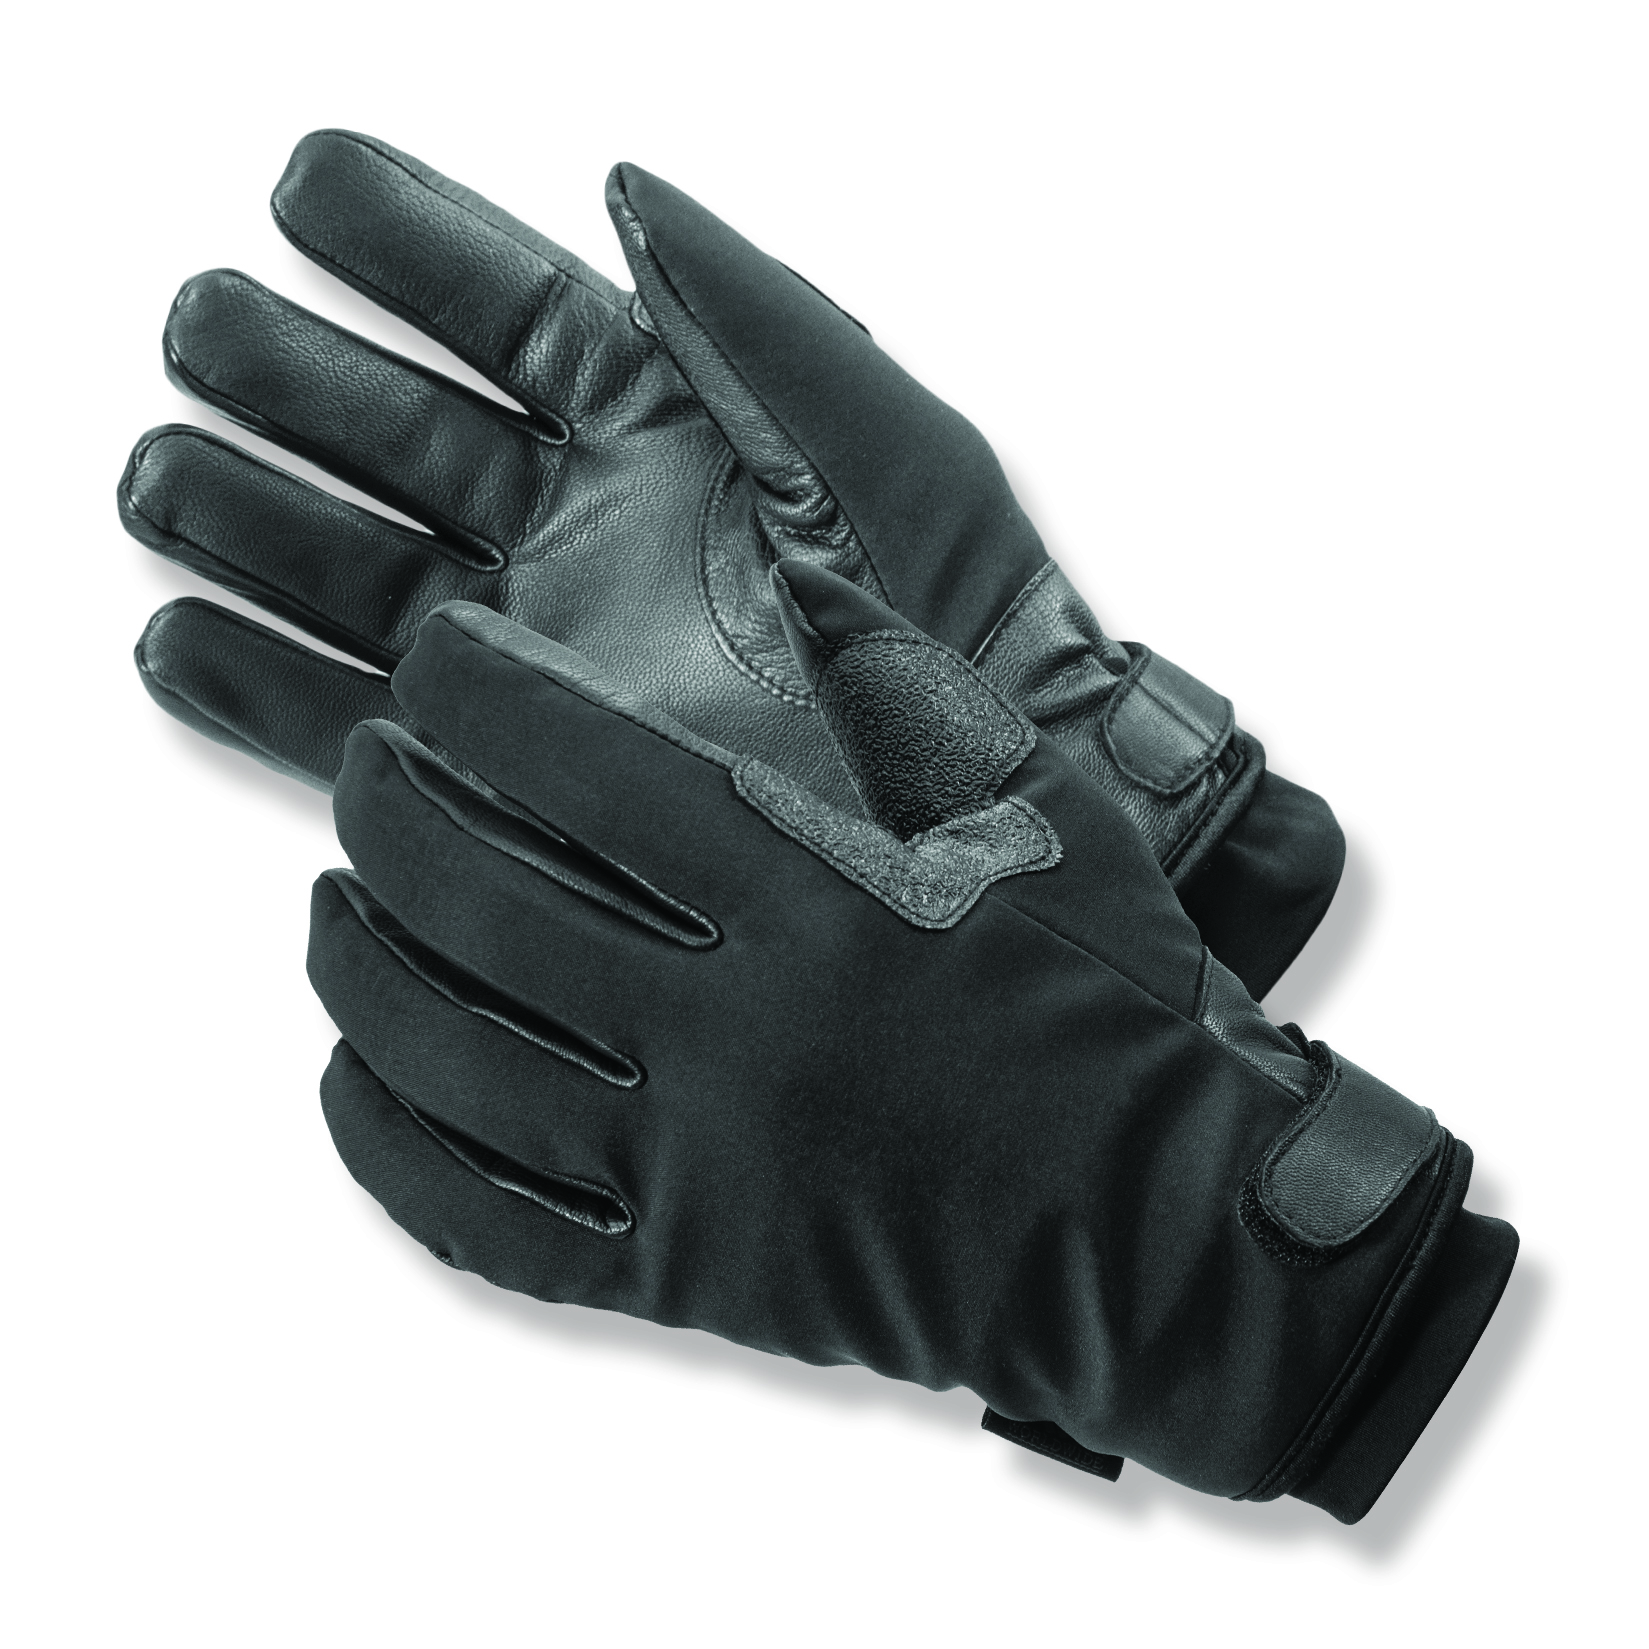 Storm Trooper™ Moisture Managing Micro Fleece Lined  Black Leather Palm and Stretch Nylon Back Winter Uniform Gloves